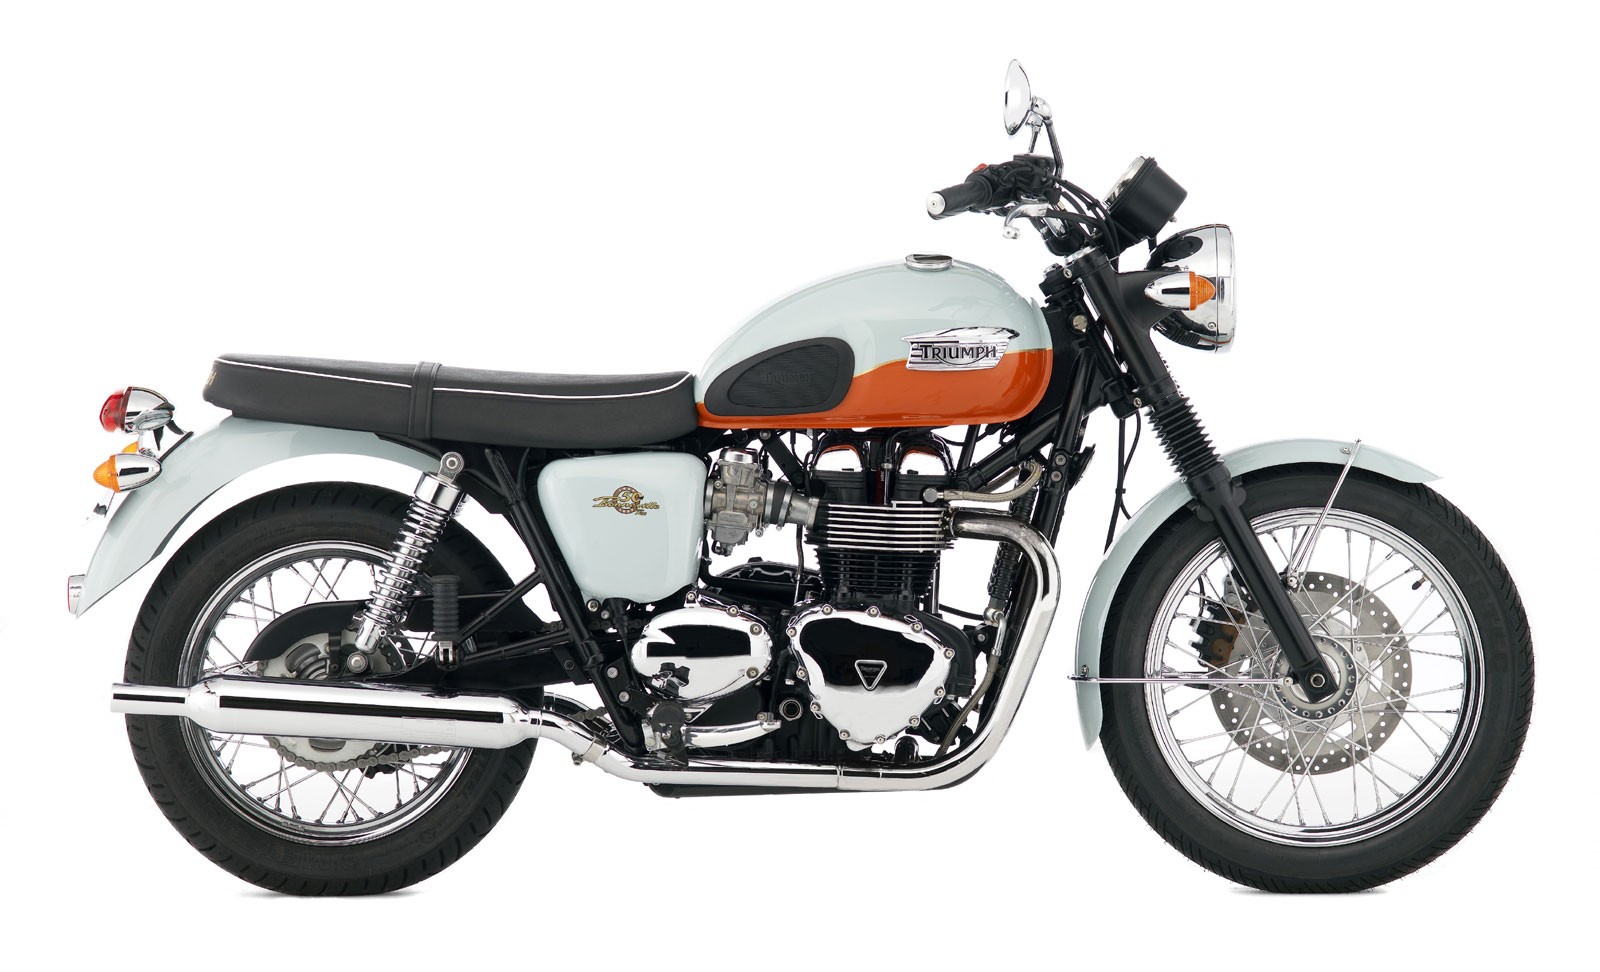 2009 Triumph Bonneville T100 Motorcycle 50th Anniversary Edition